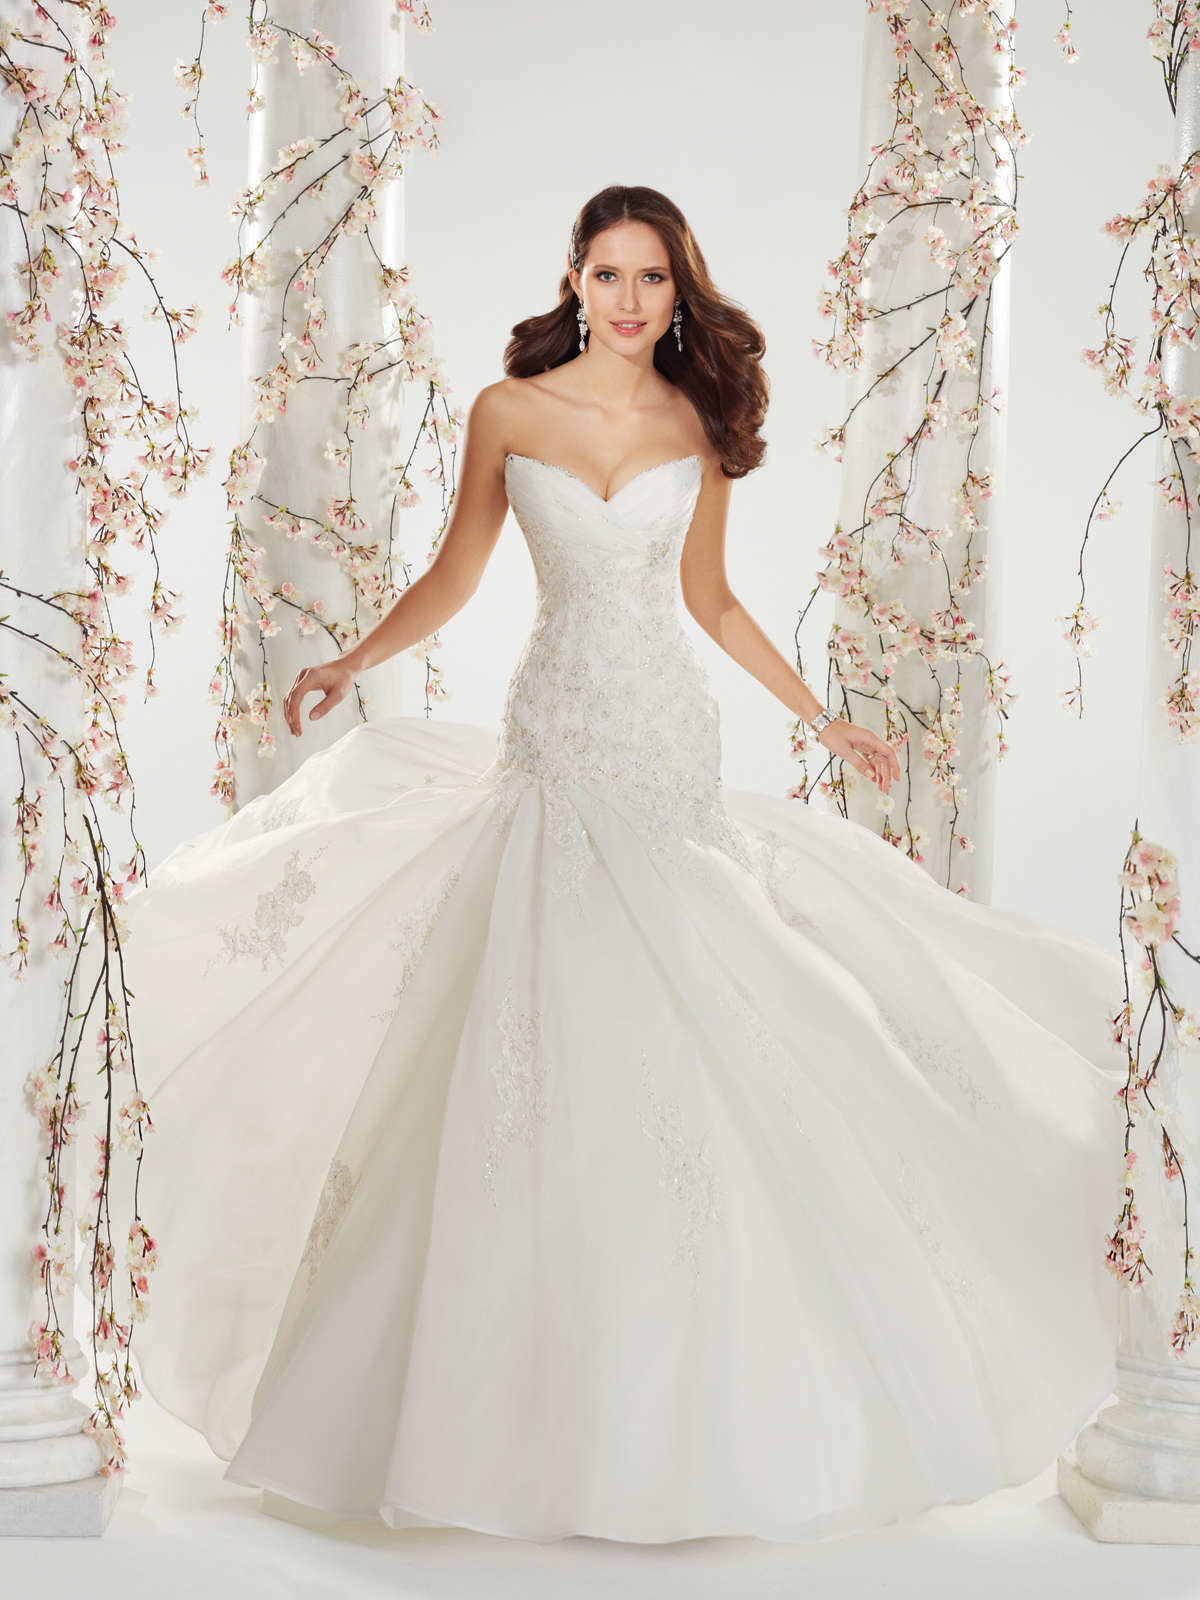 Best Wedding Dresses 2014 Images - Wedding Dress, Decoration And ...